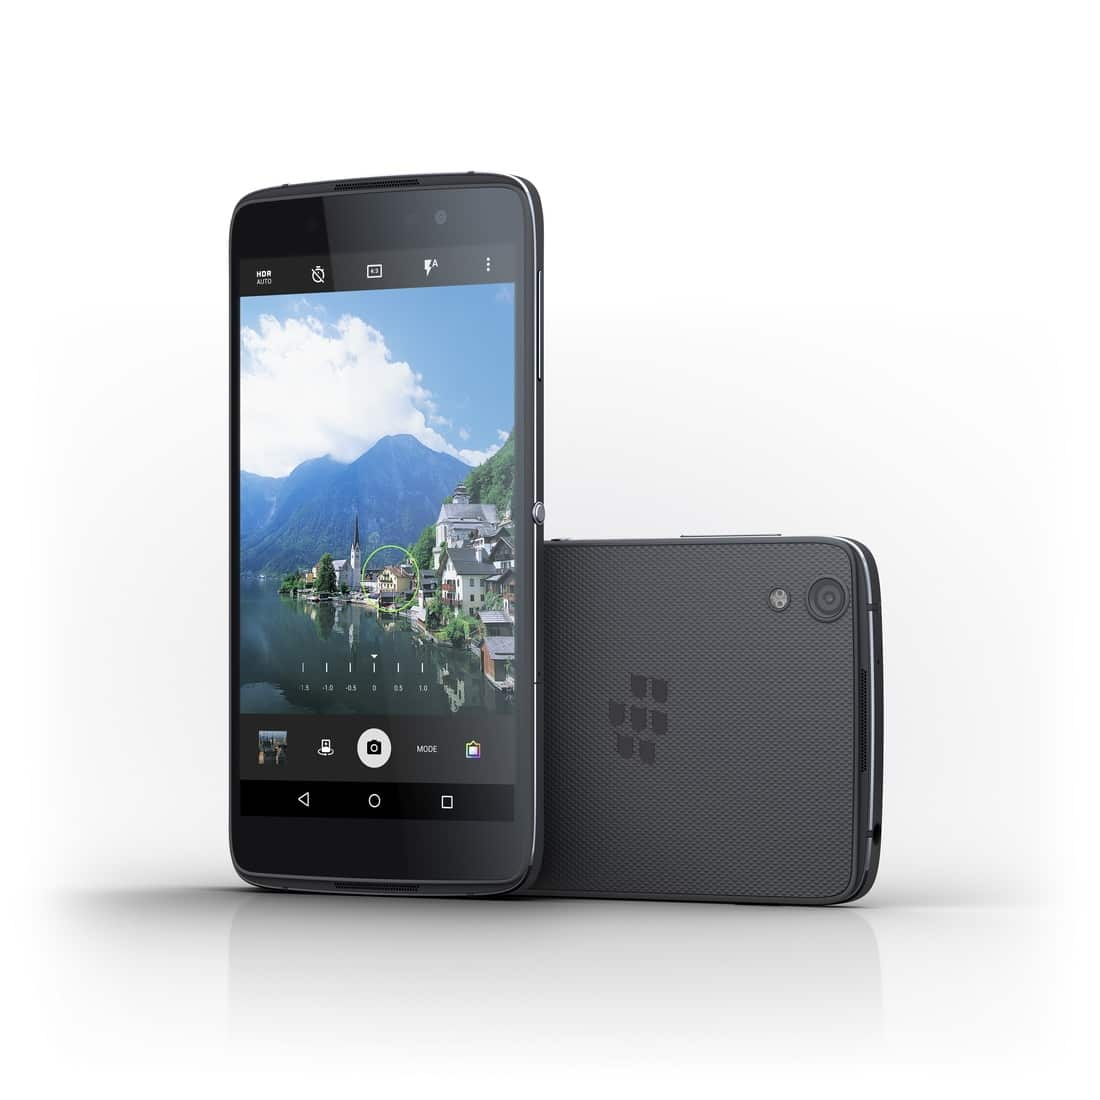 BlackBerry RM1200 DTEK50 Is Worlds Most Secure Android Phone